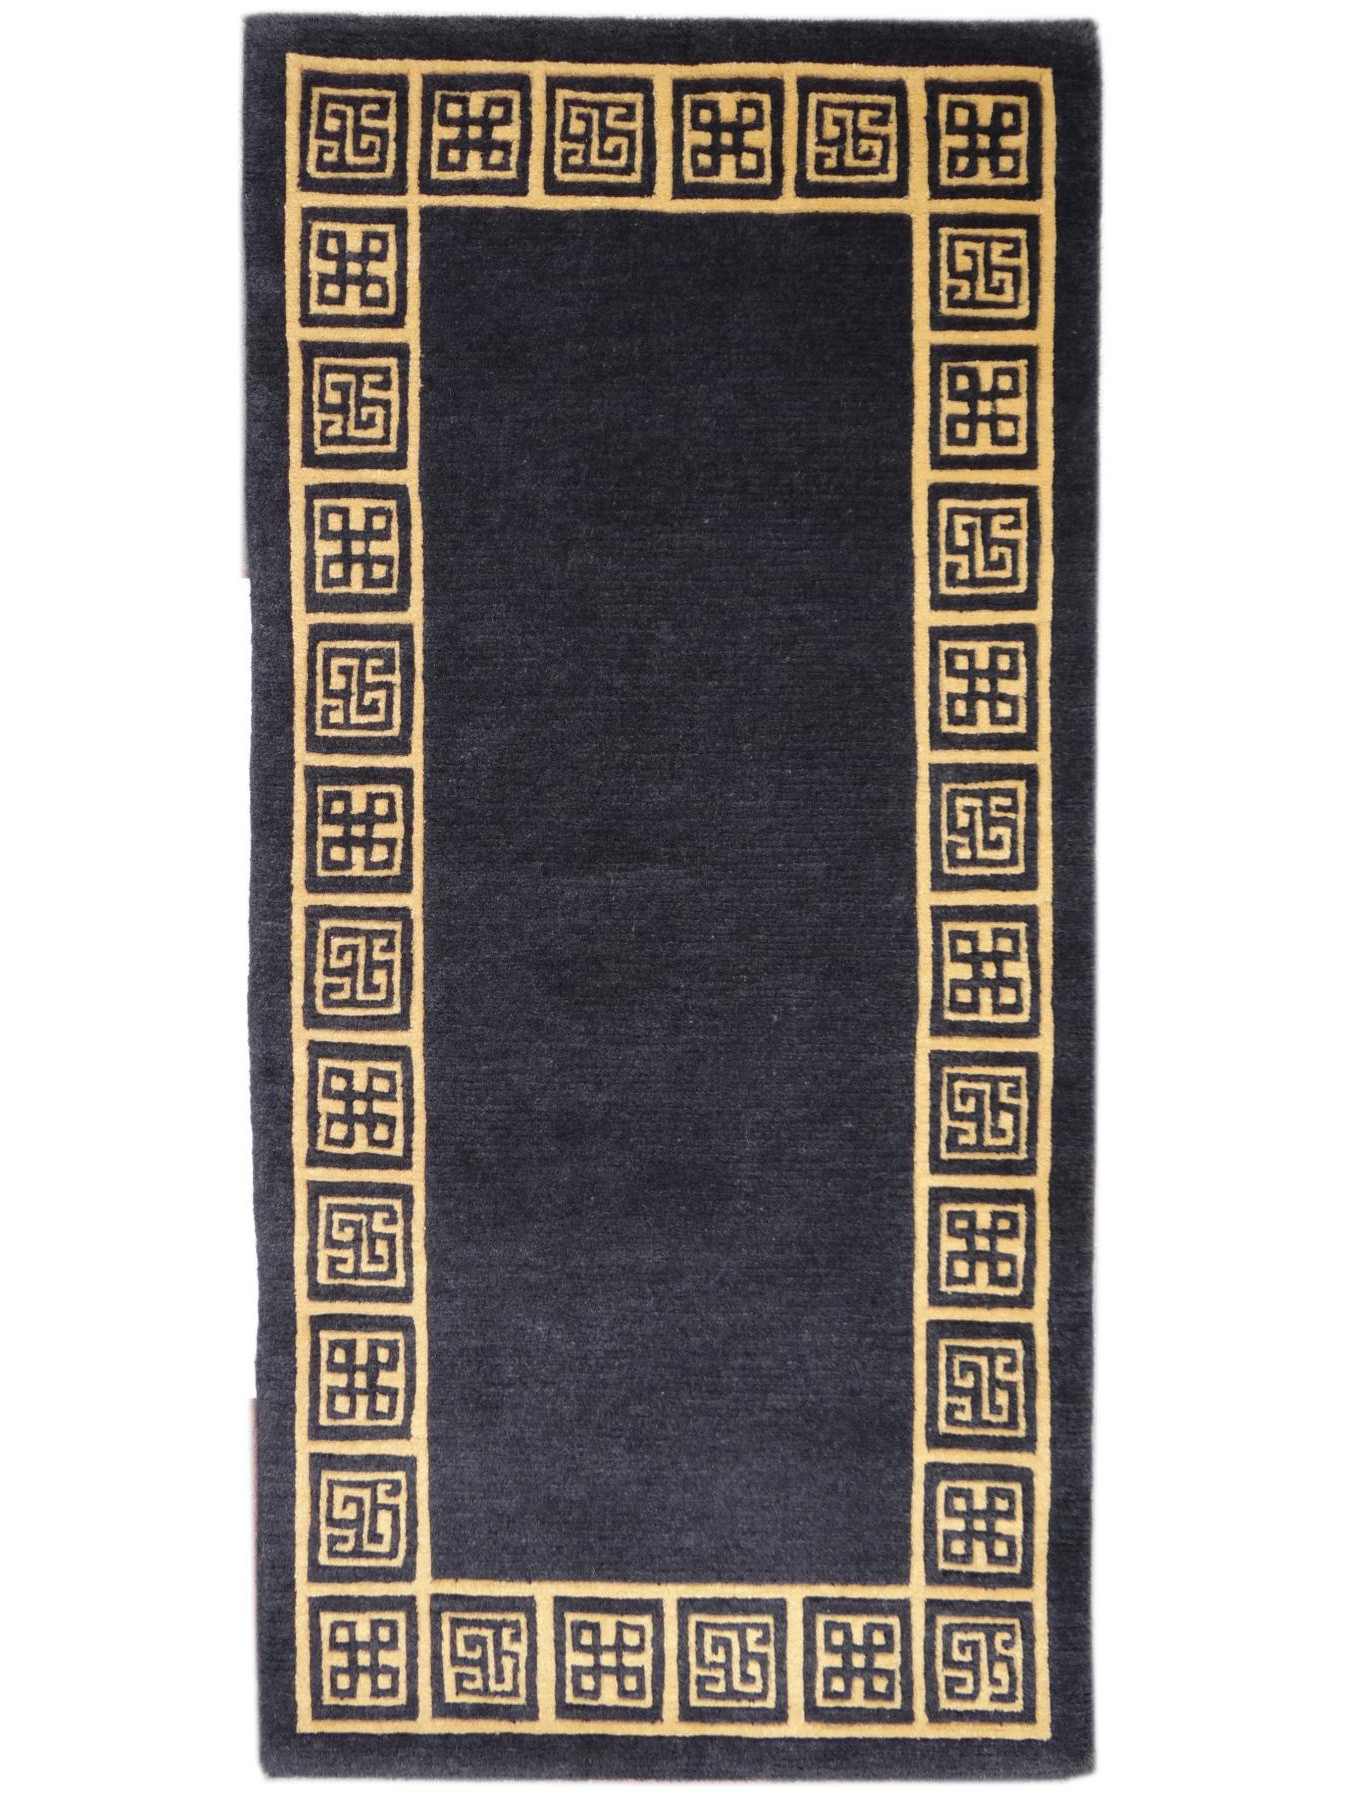 Carpets with borders - BONPO 100 - 9500